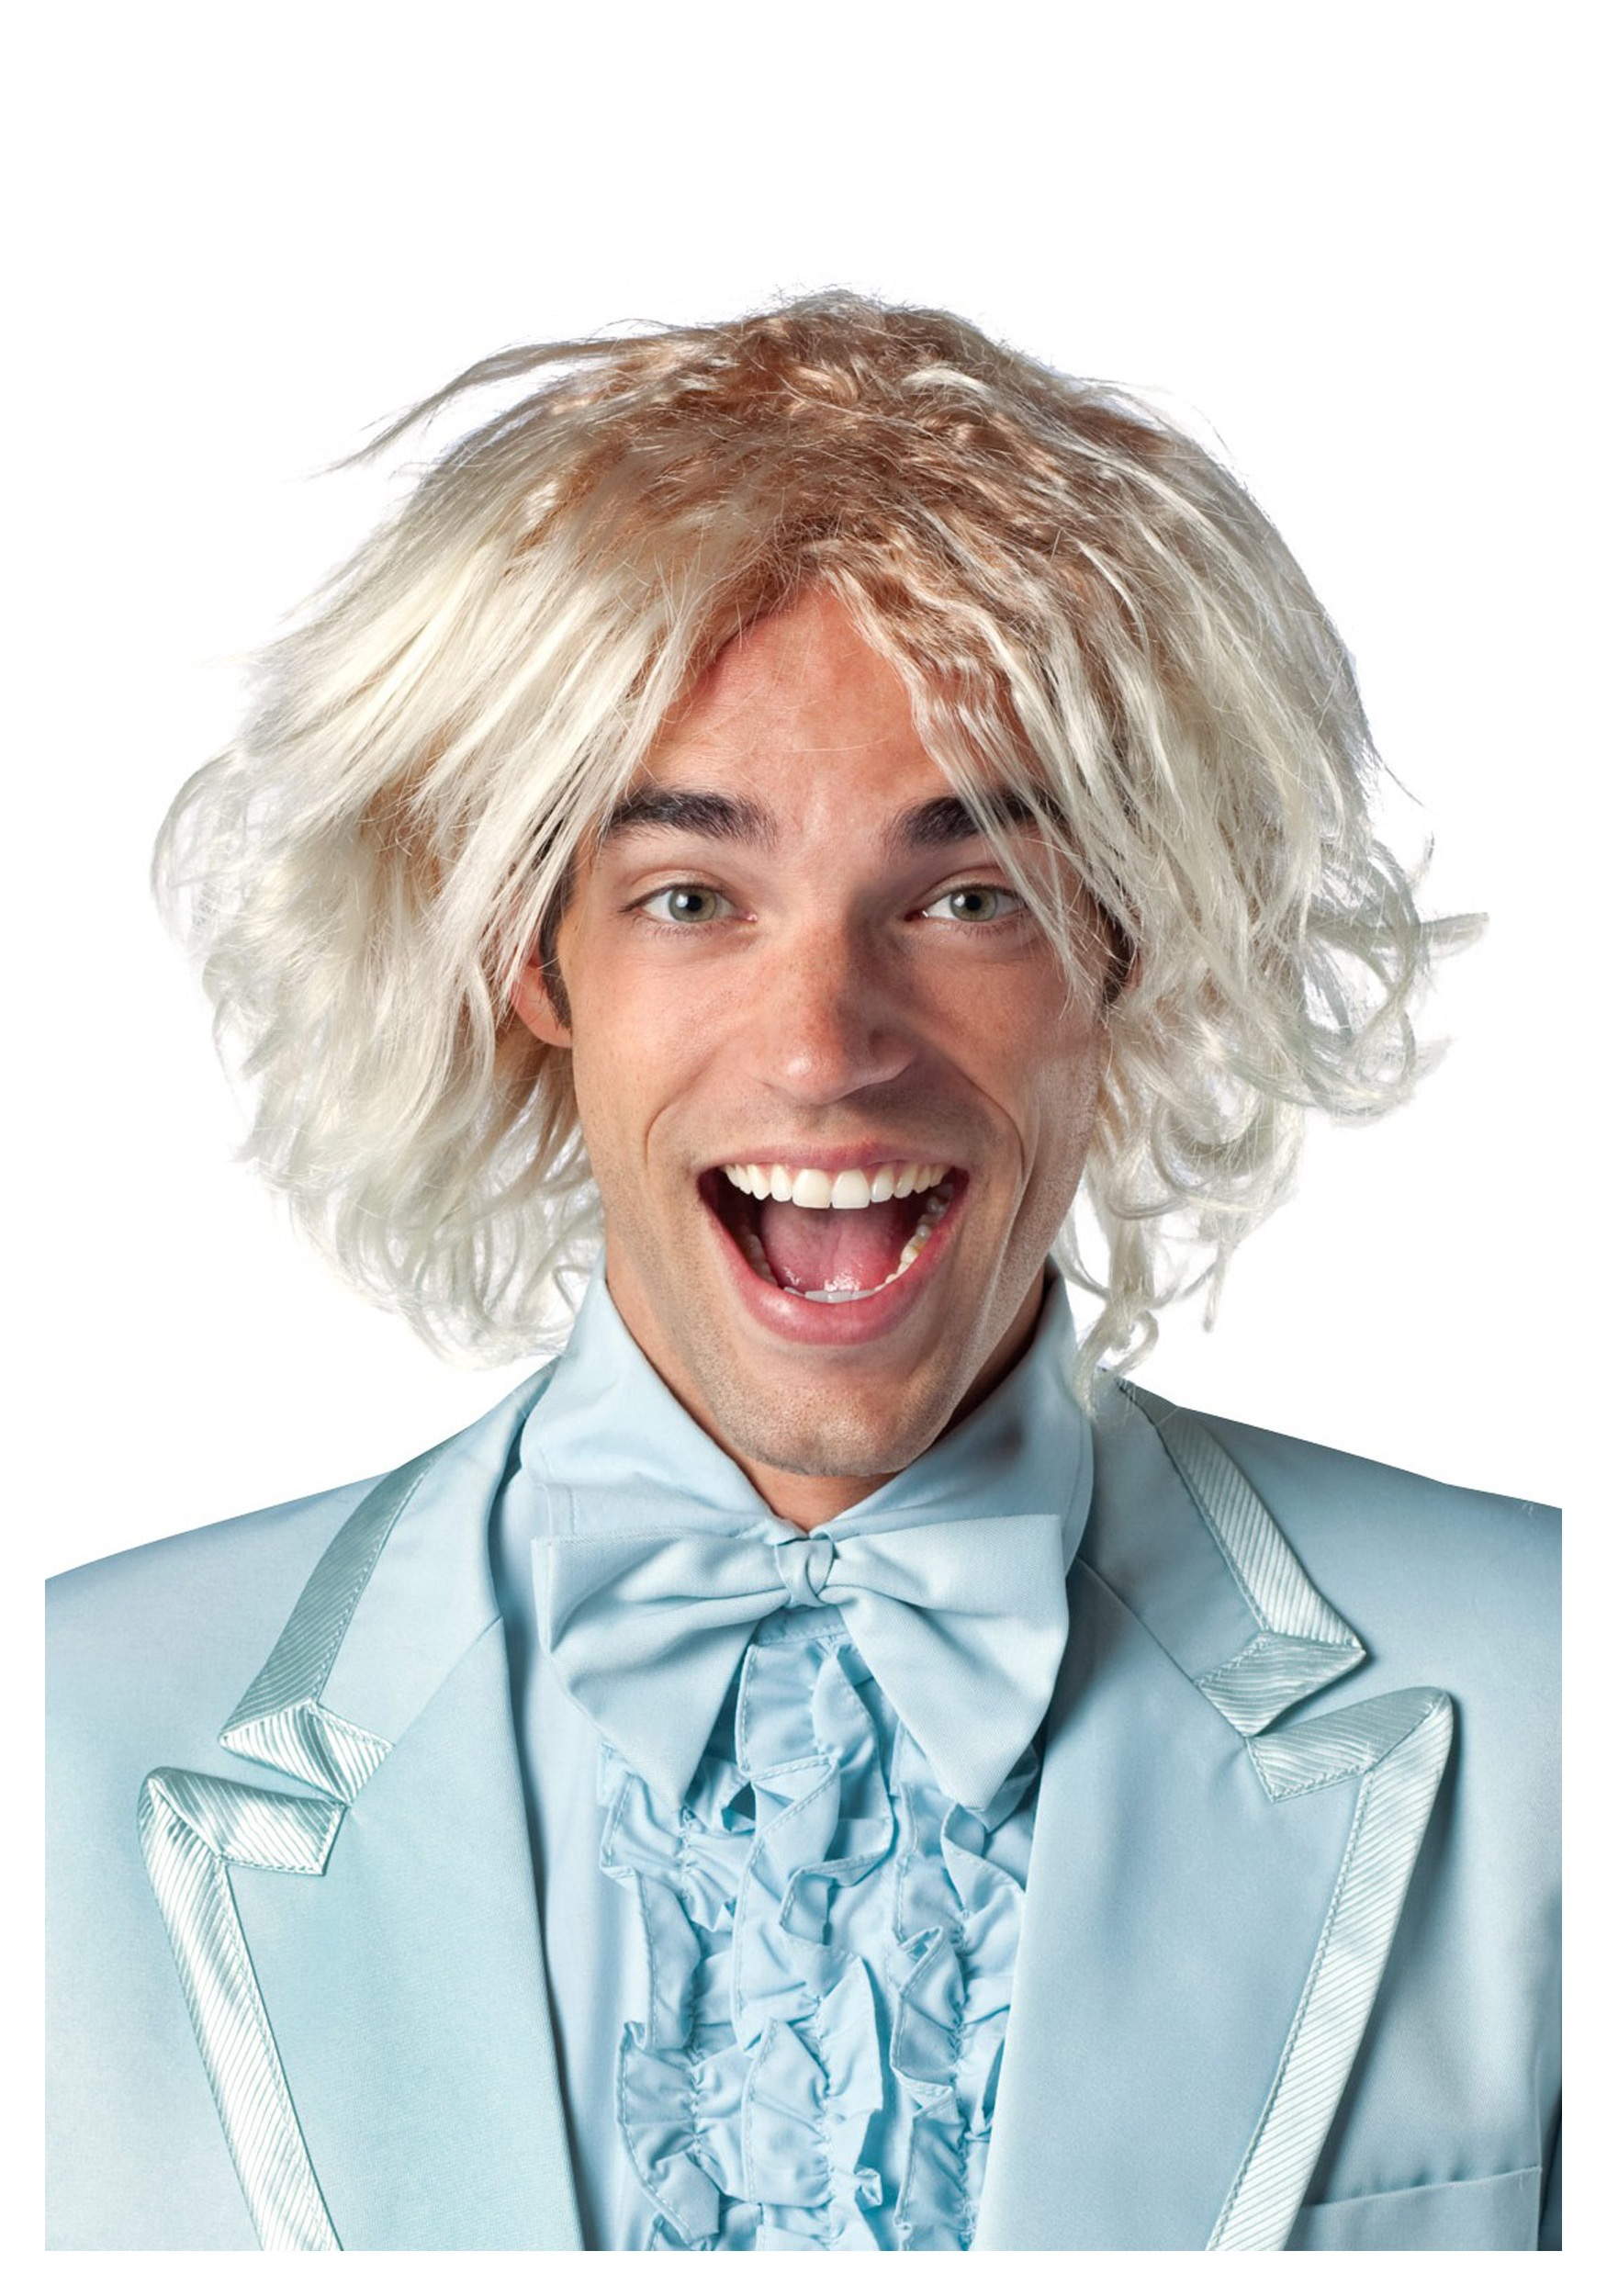 f23f5256969 Dumb and Dumber Harry Wig - Blonde Harry Costume Wig